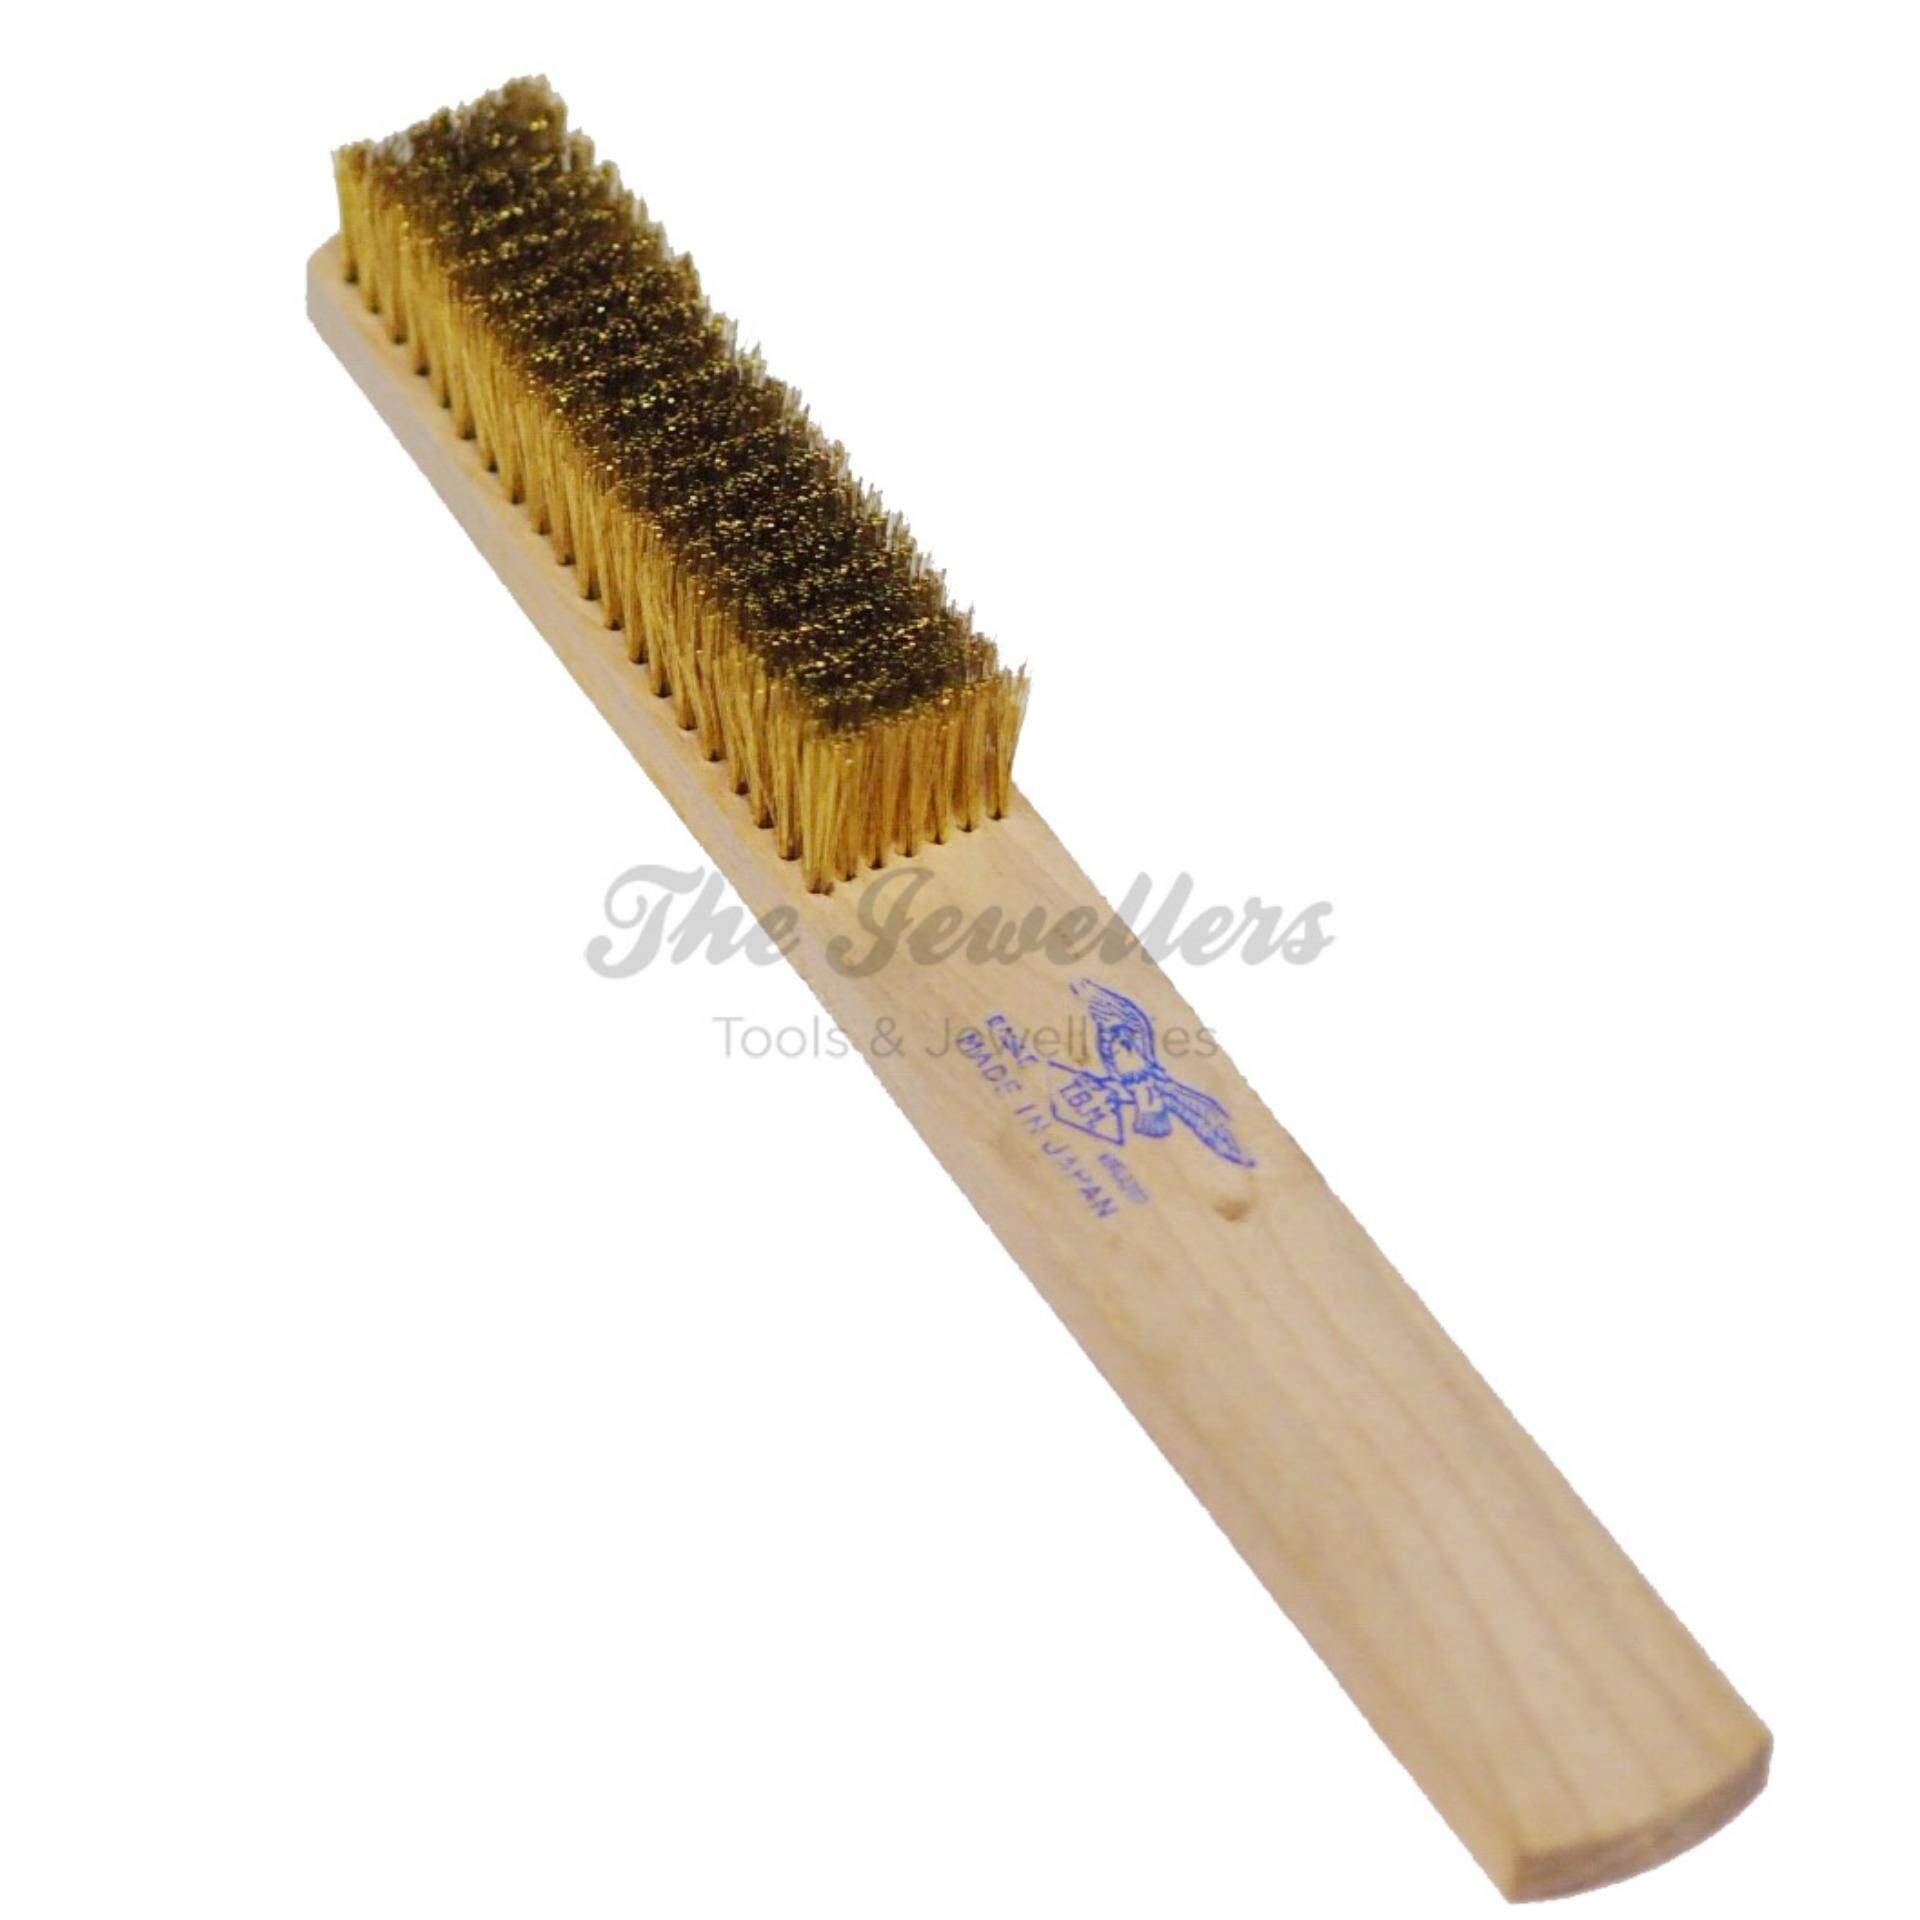 Eagle 7 Rows Soft Brass Wire Brush for Jewellery Cleaning